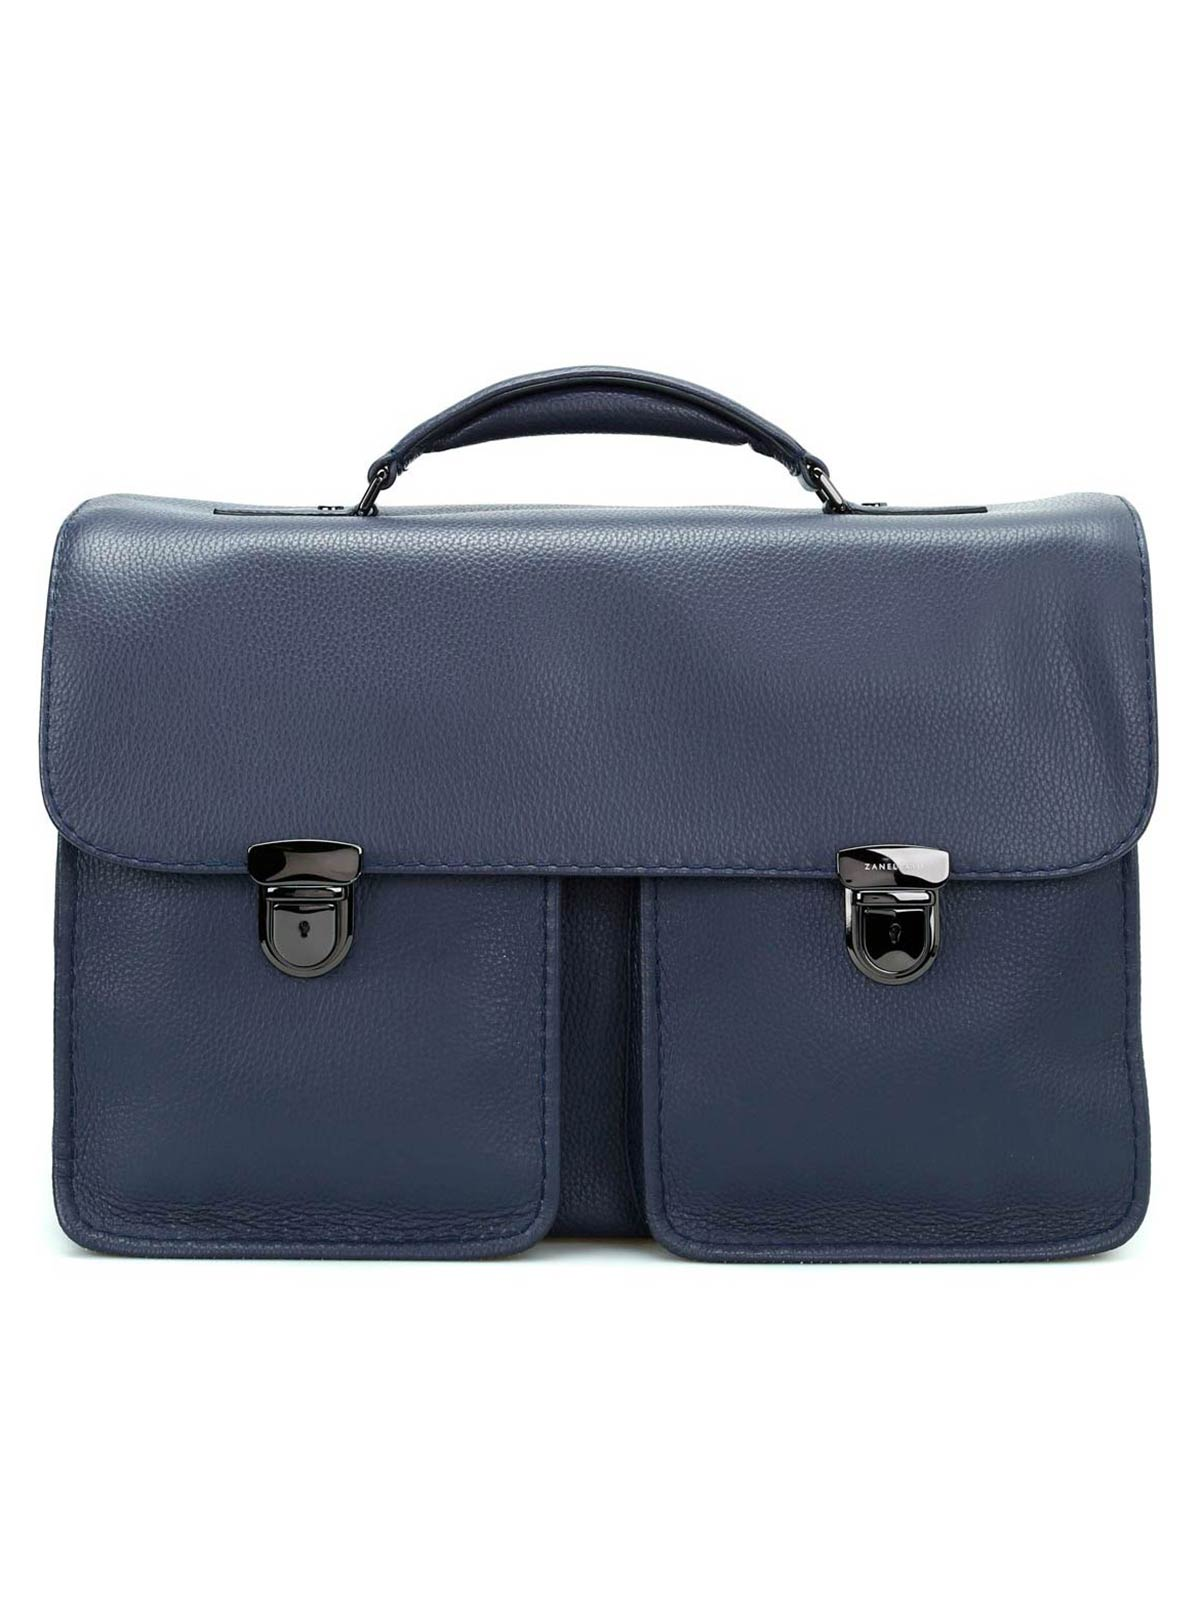 Picture of ZANELLATO | Men's Almirante Dollarone Bag